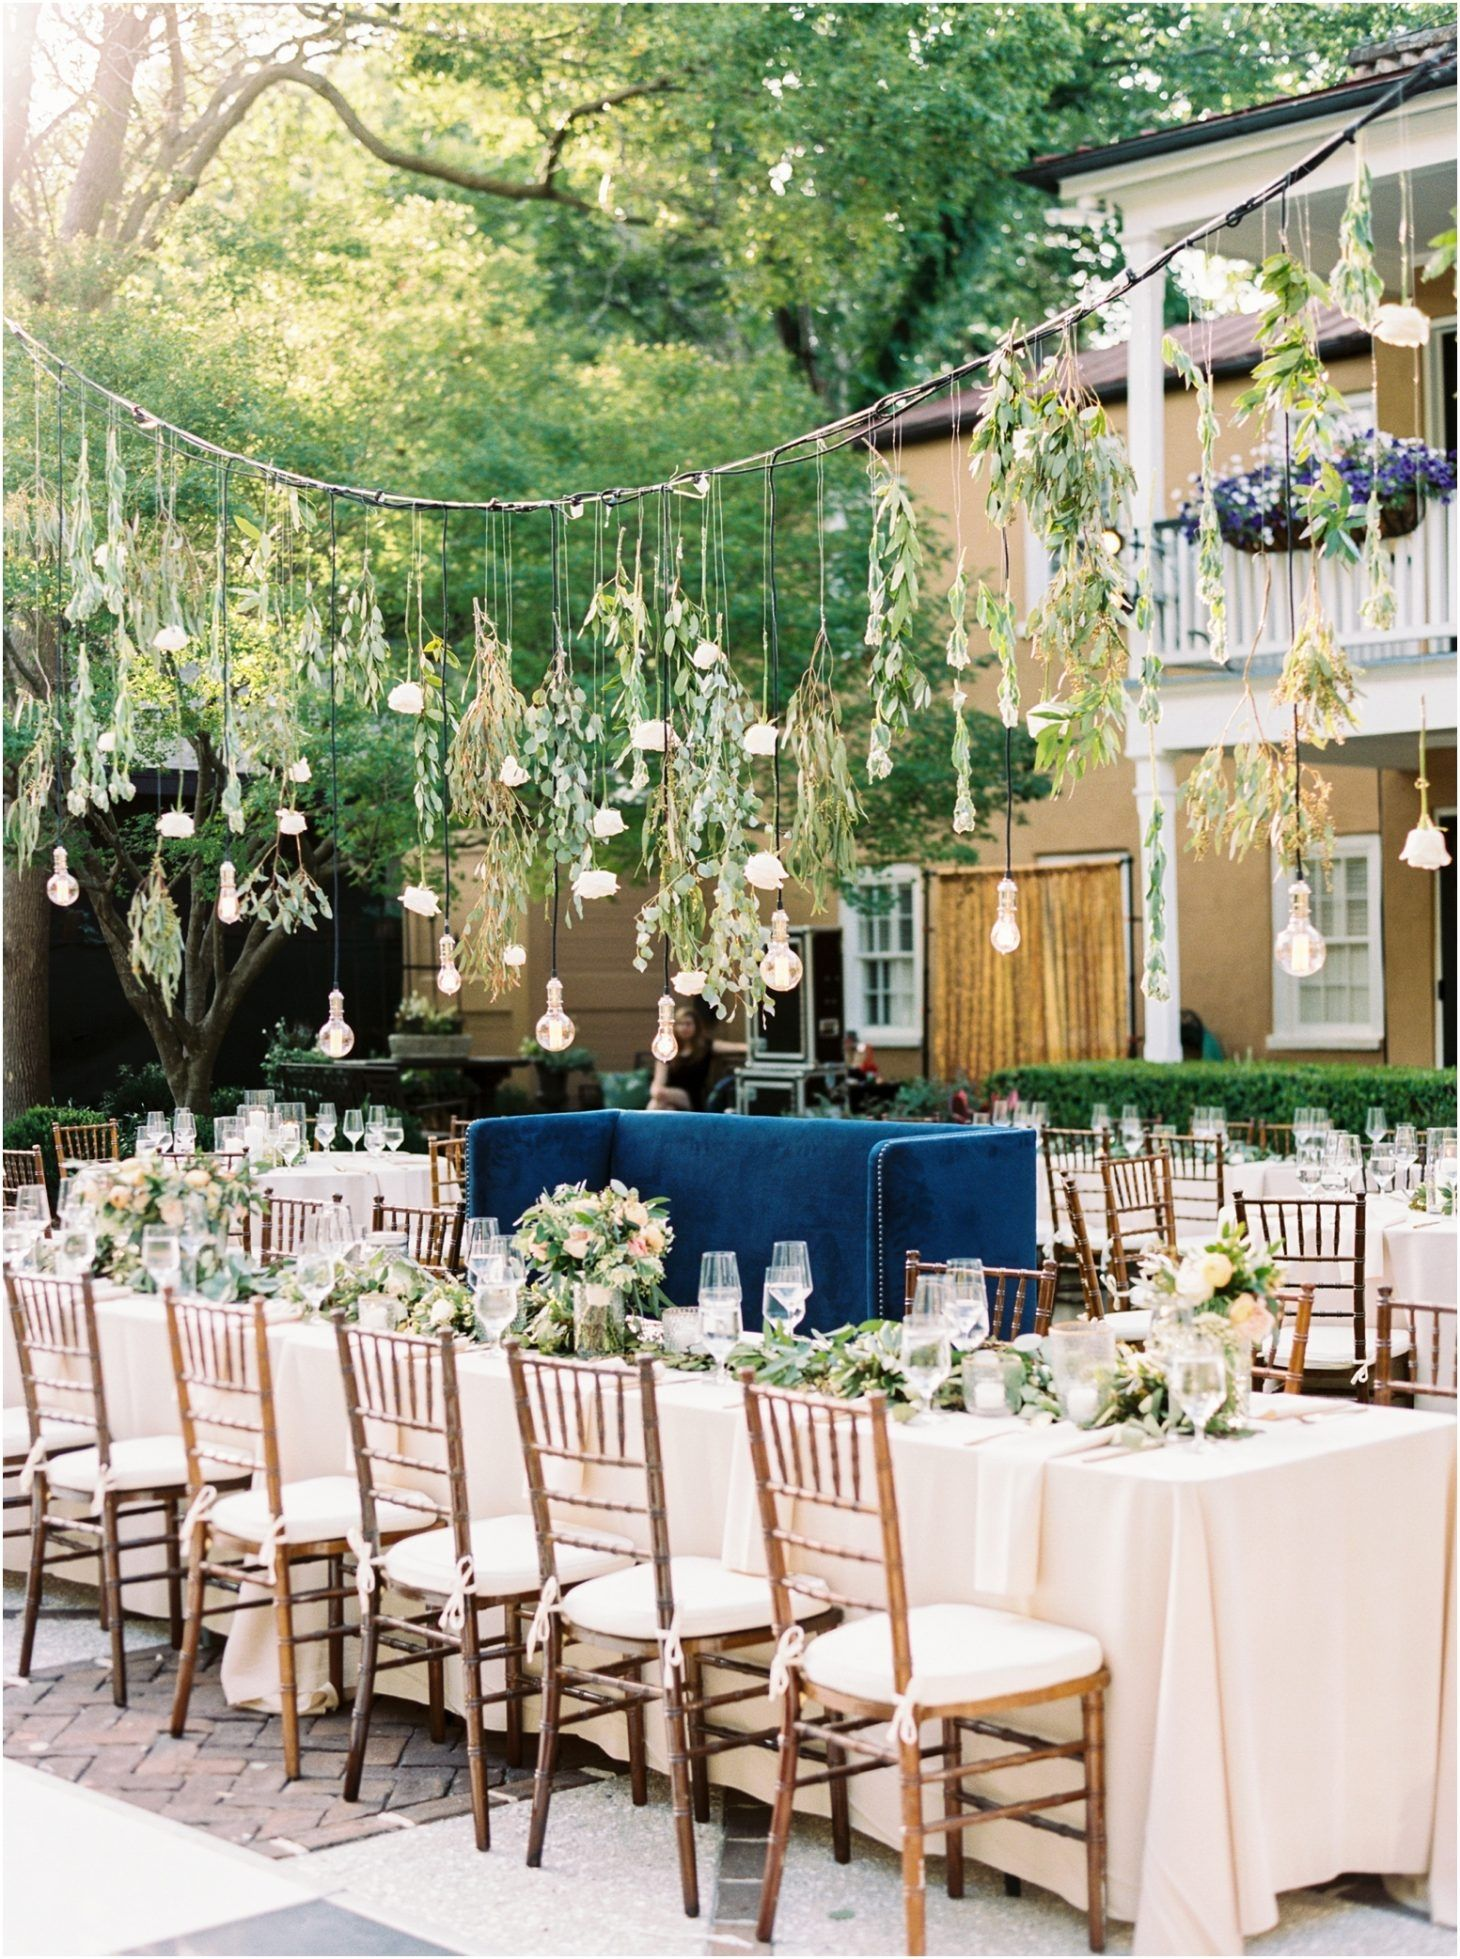 Wedding reception decor ideas love the vintage bulbs hanging over wedding reception decor ideas love the vintage bulbs hanging over the head table at the thomas bennett house in charleston junglespirit Image collections